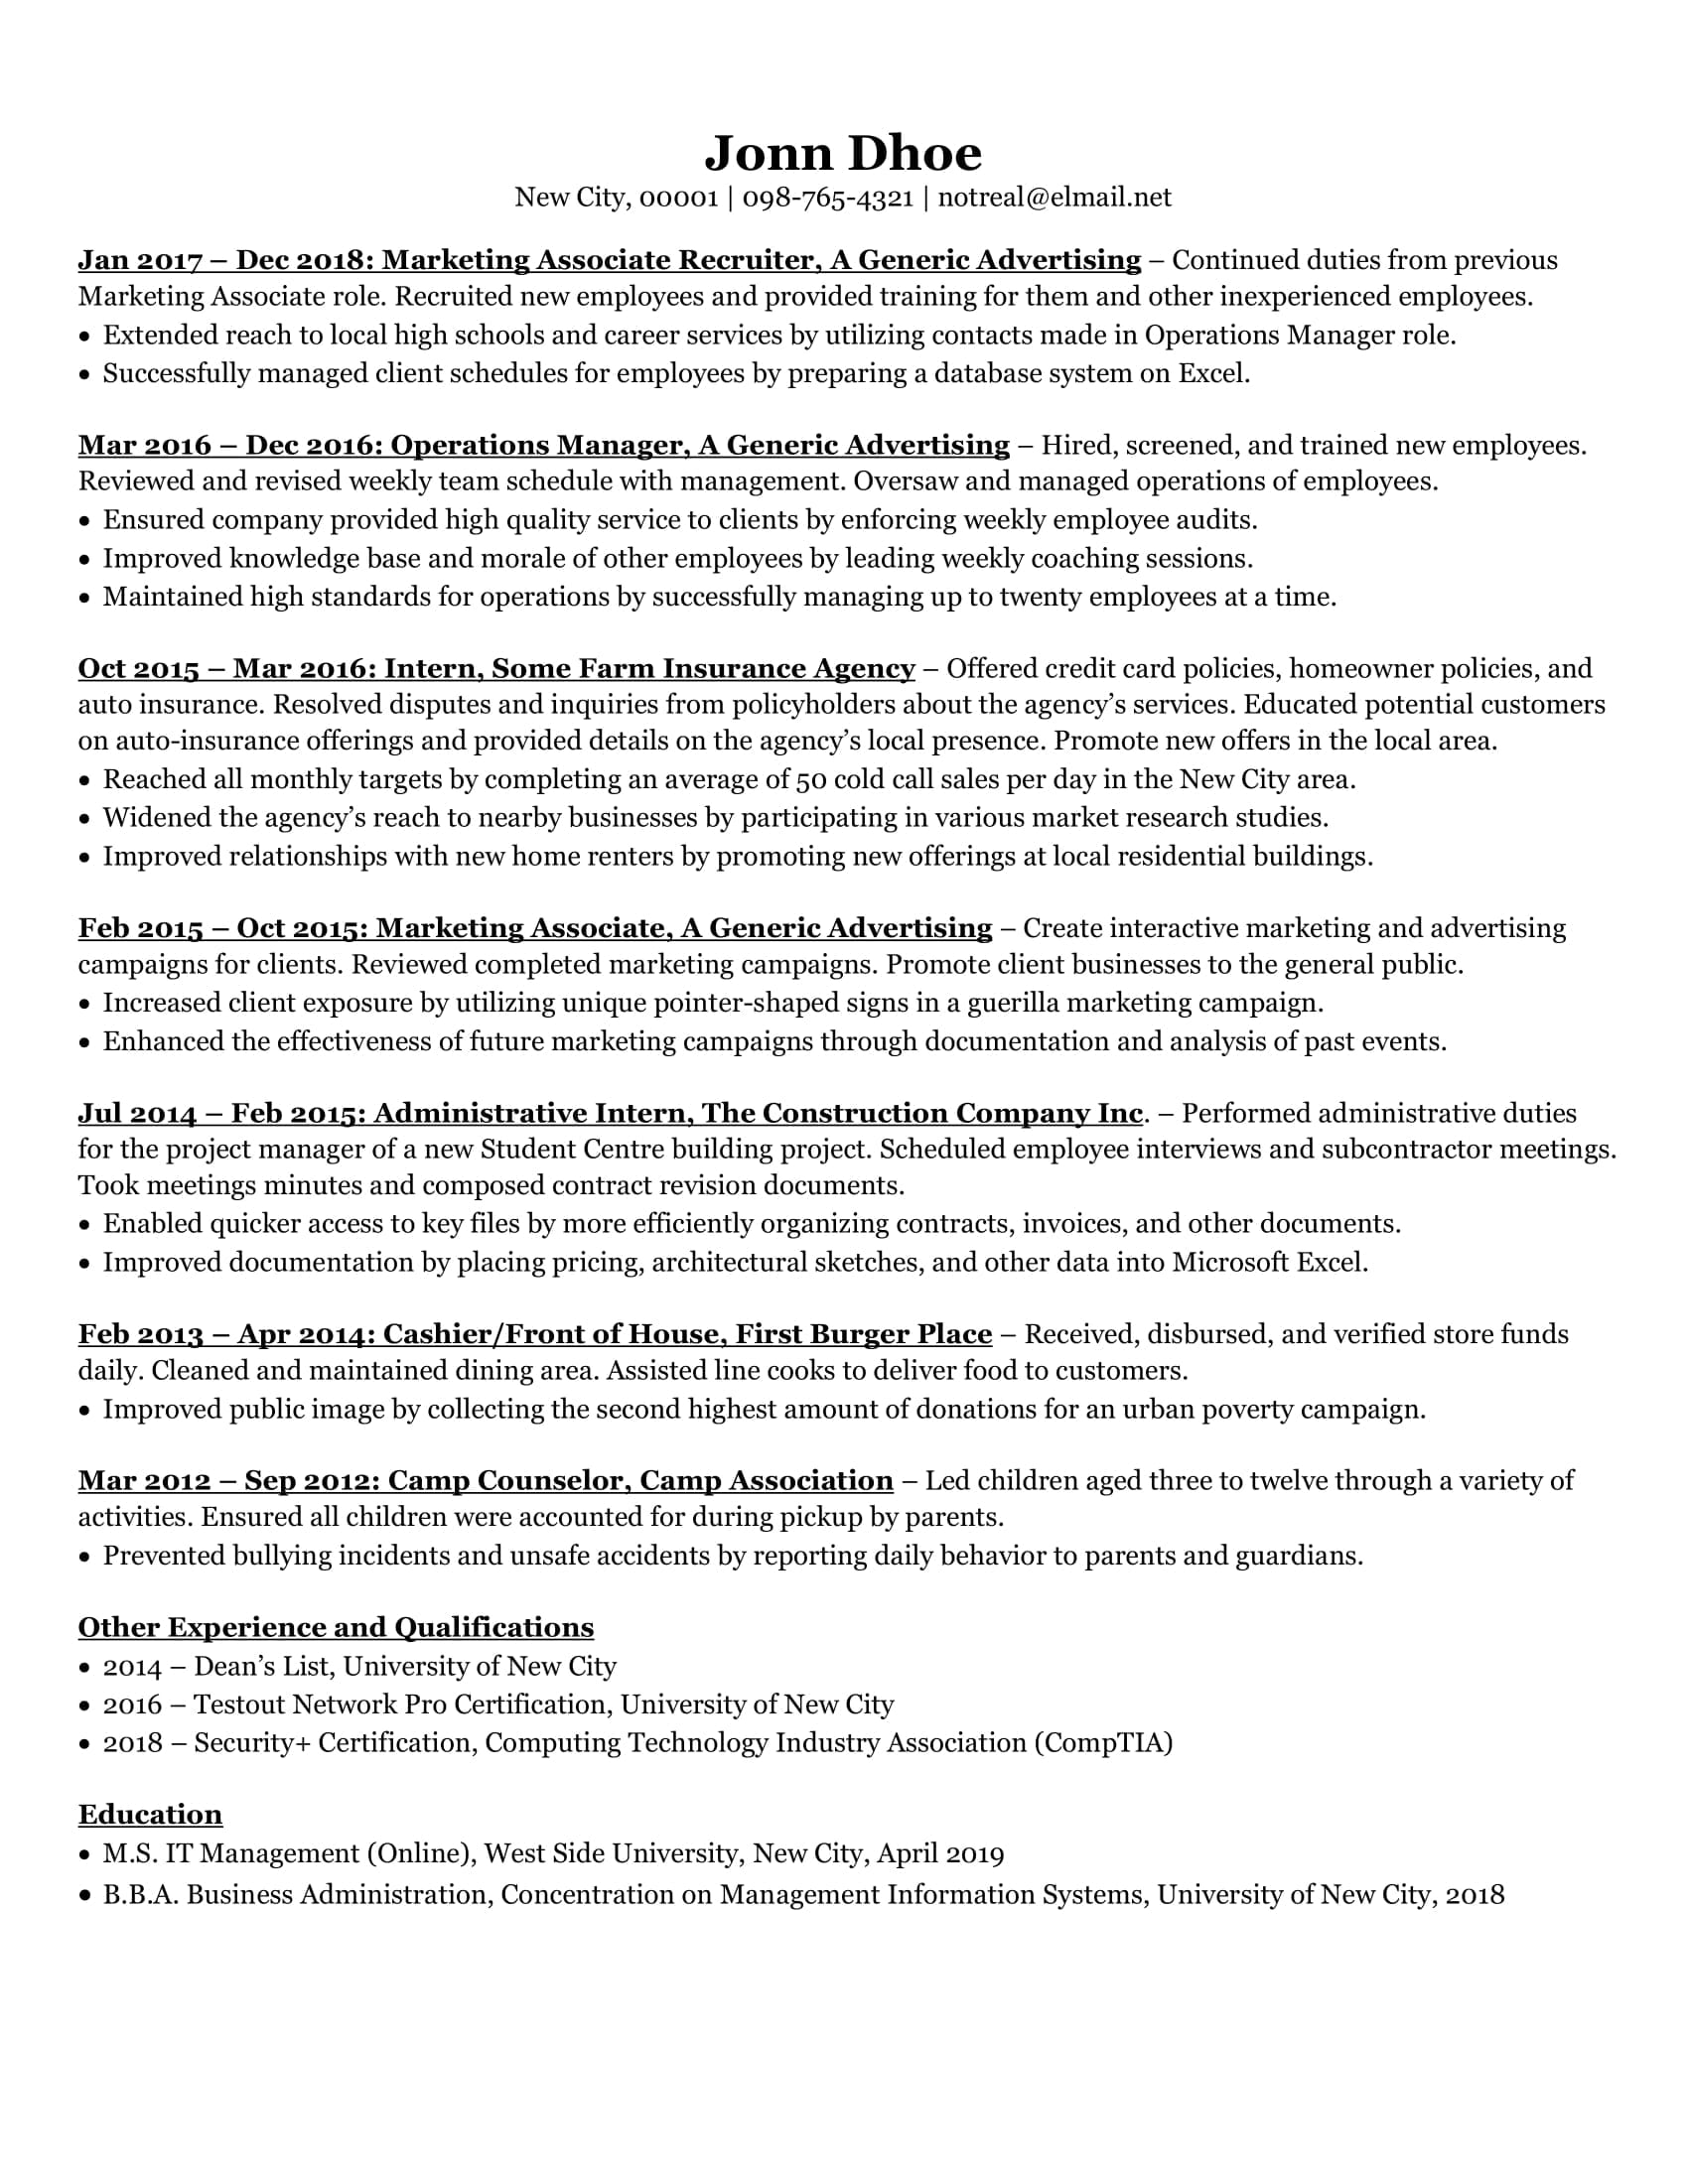 One Page Resume For Experienced from fiverr-res.cloudinary.com